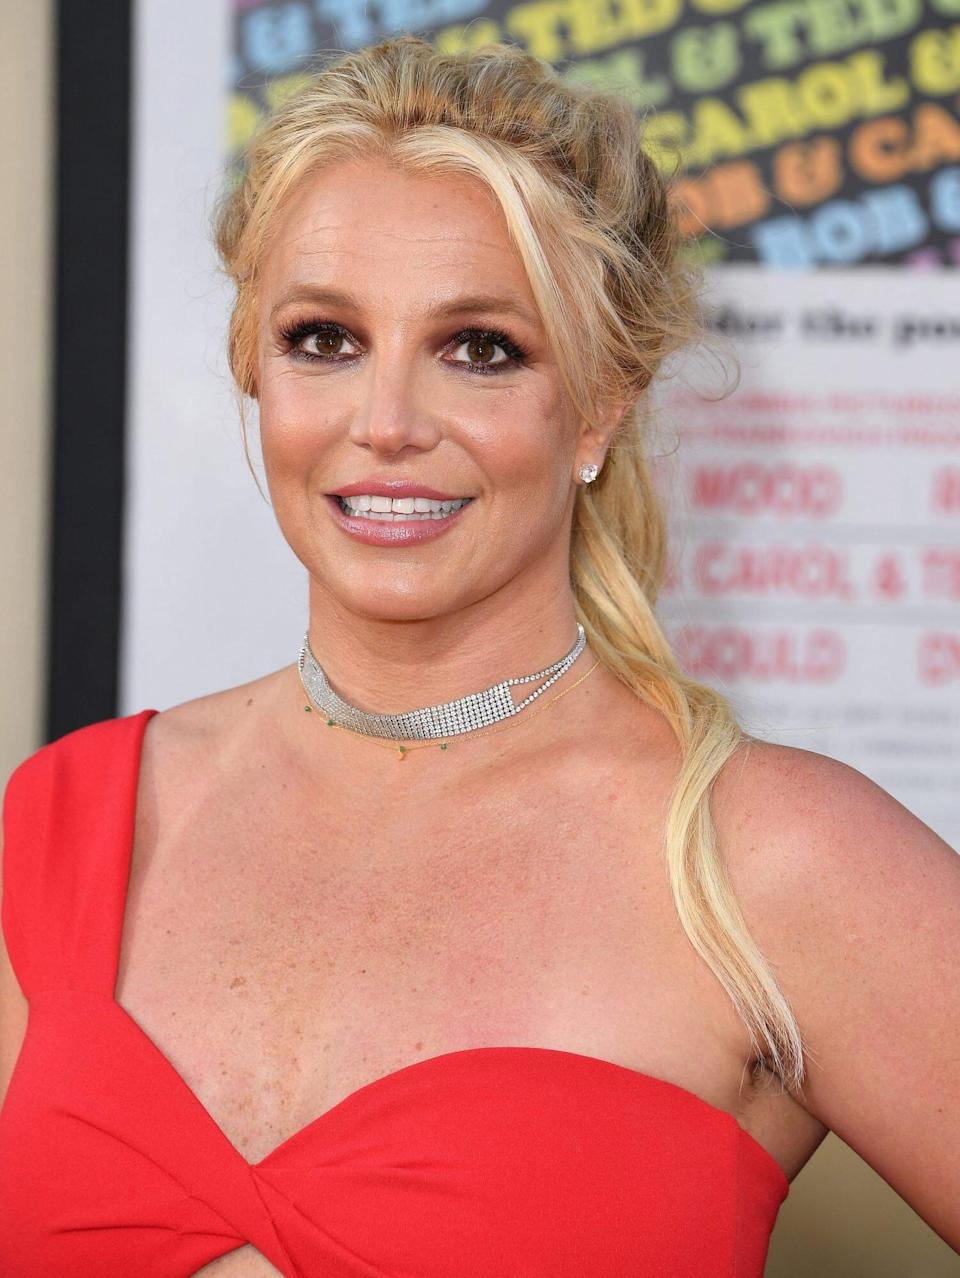 Britney Spears Wants Her Conservatorship Case to Be Open to the Public